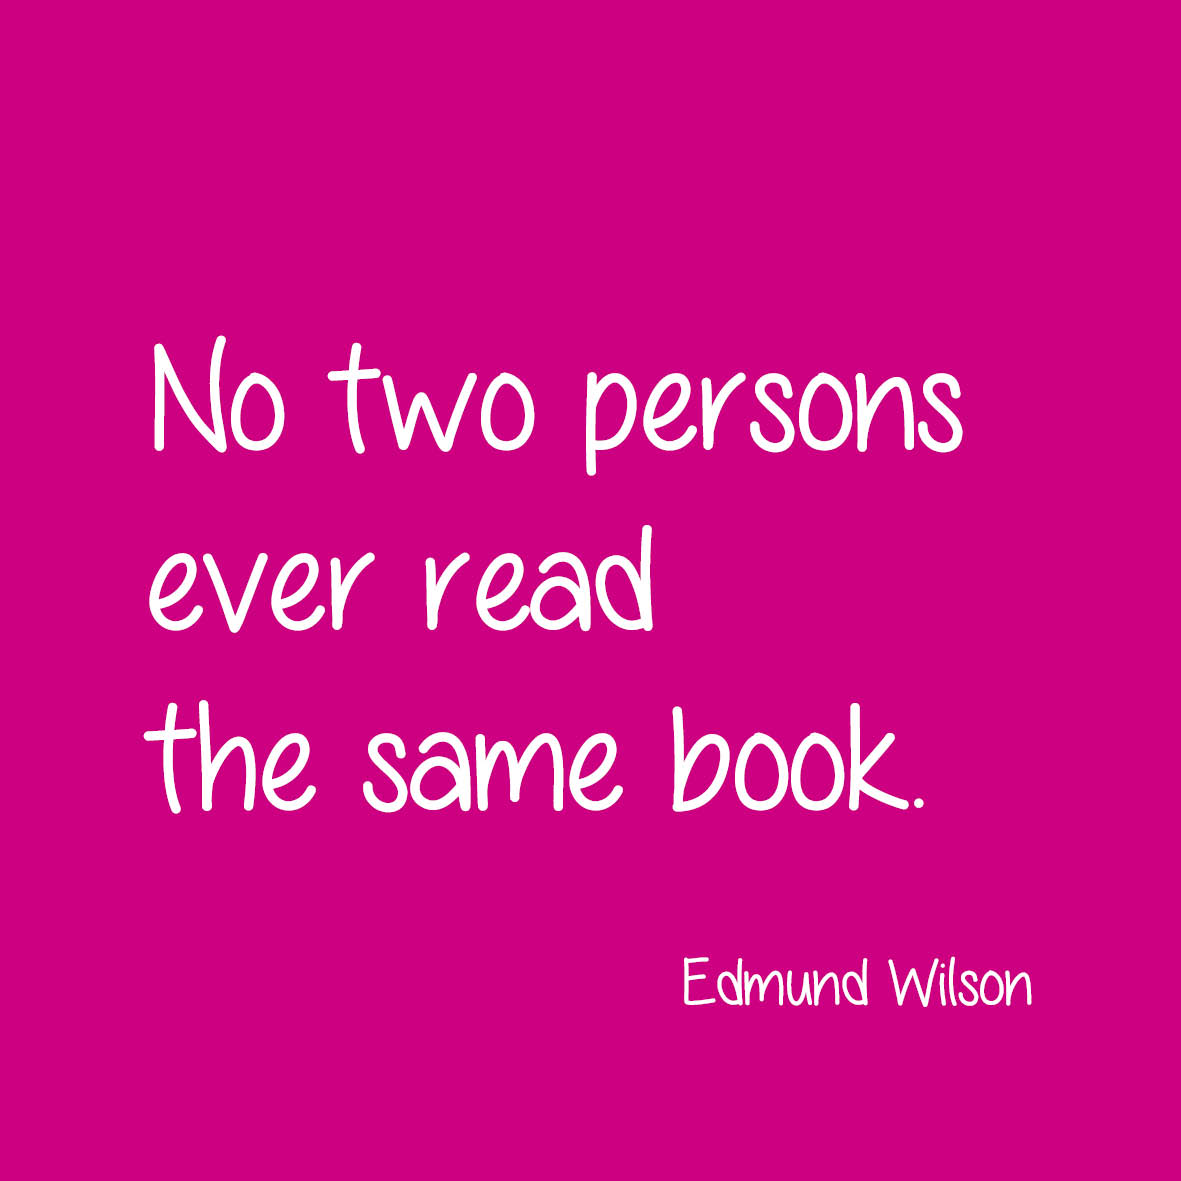 No two persons ever read the same book. Edward Wilson